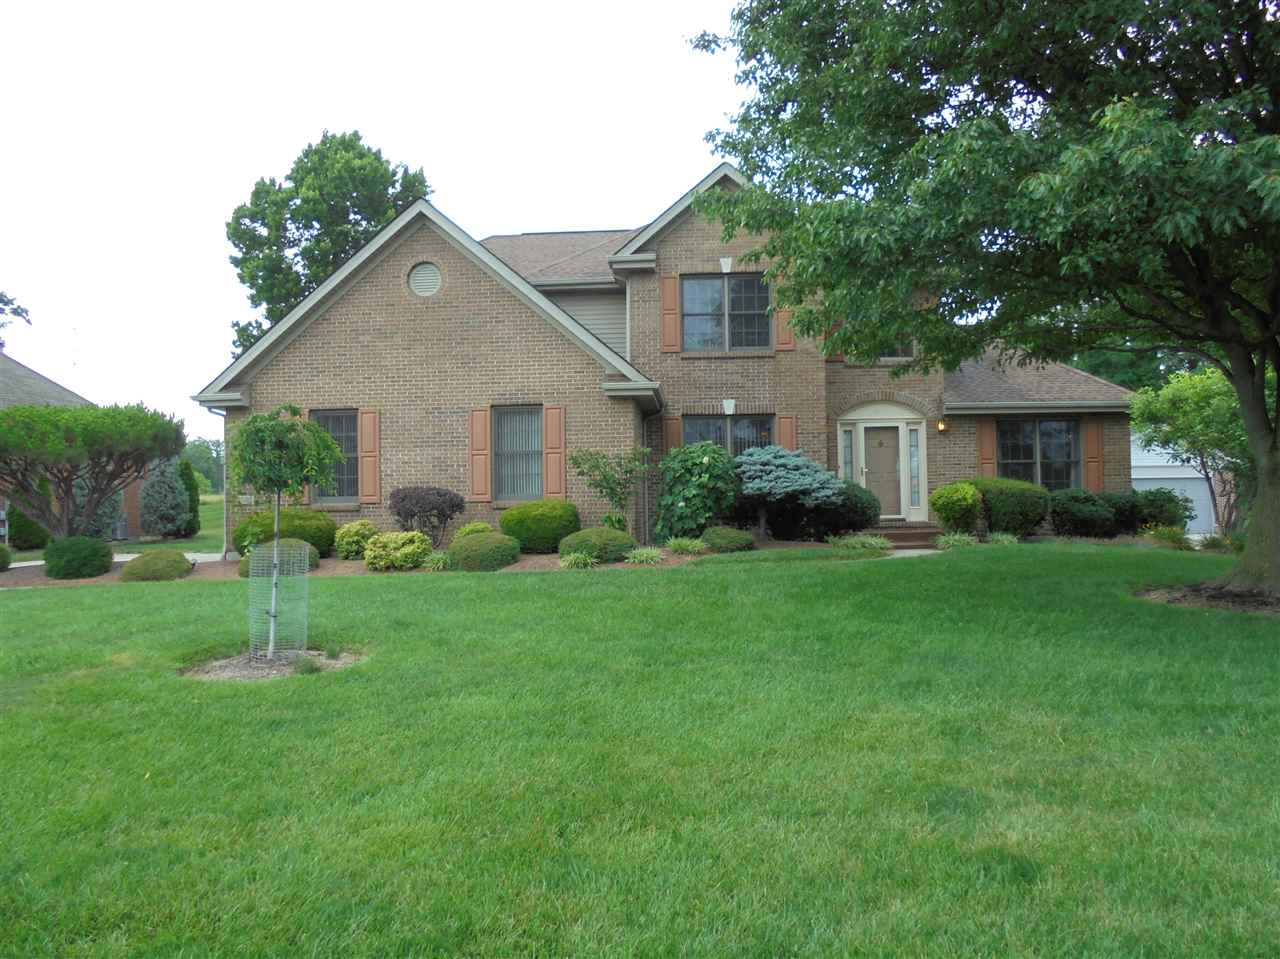 Photo 1 for 1029 Lauren Dr Villa Hills, KY 41017